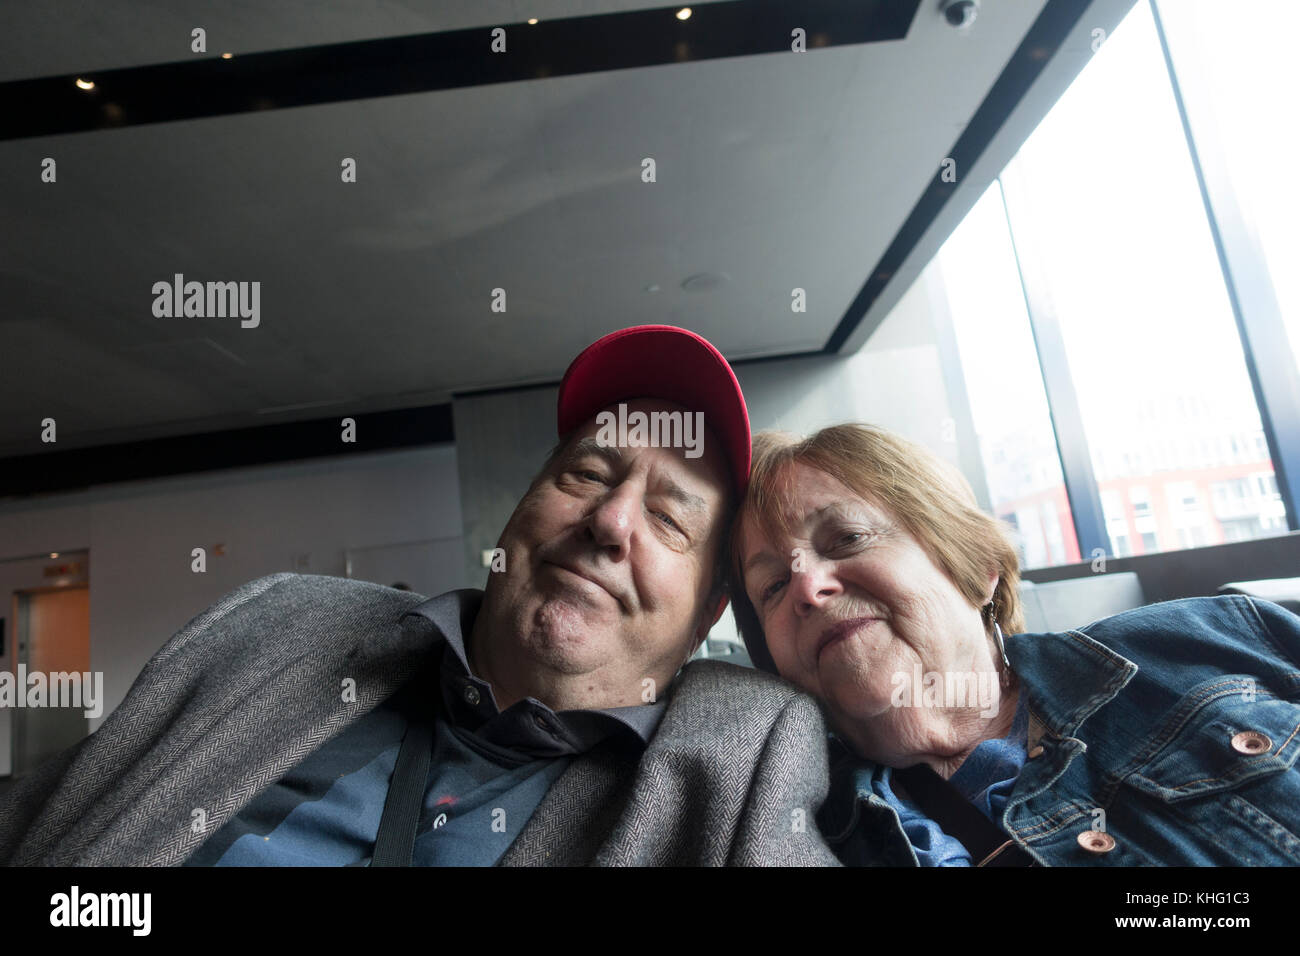 Infamous photographer Steve Skjold celebrates his 50th year of marriage with his bride Mary at the Guthrie Theater. - Stock Image